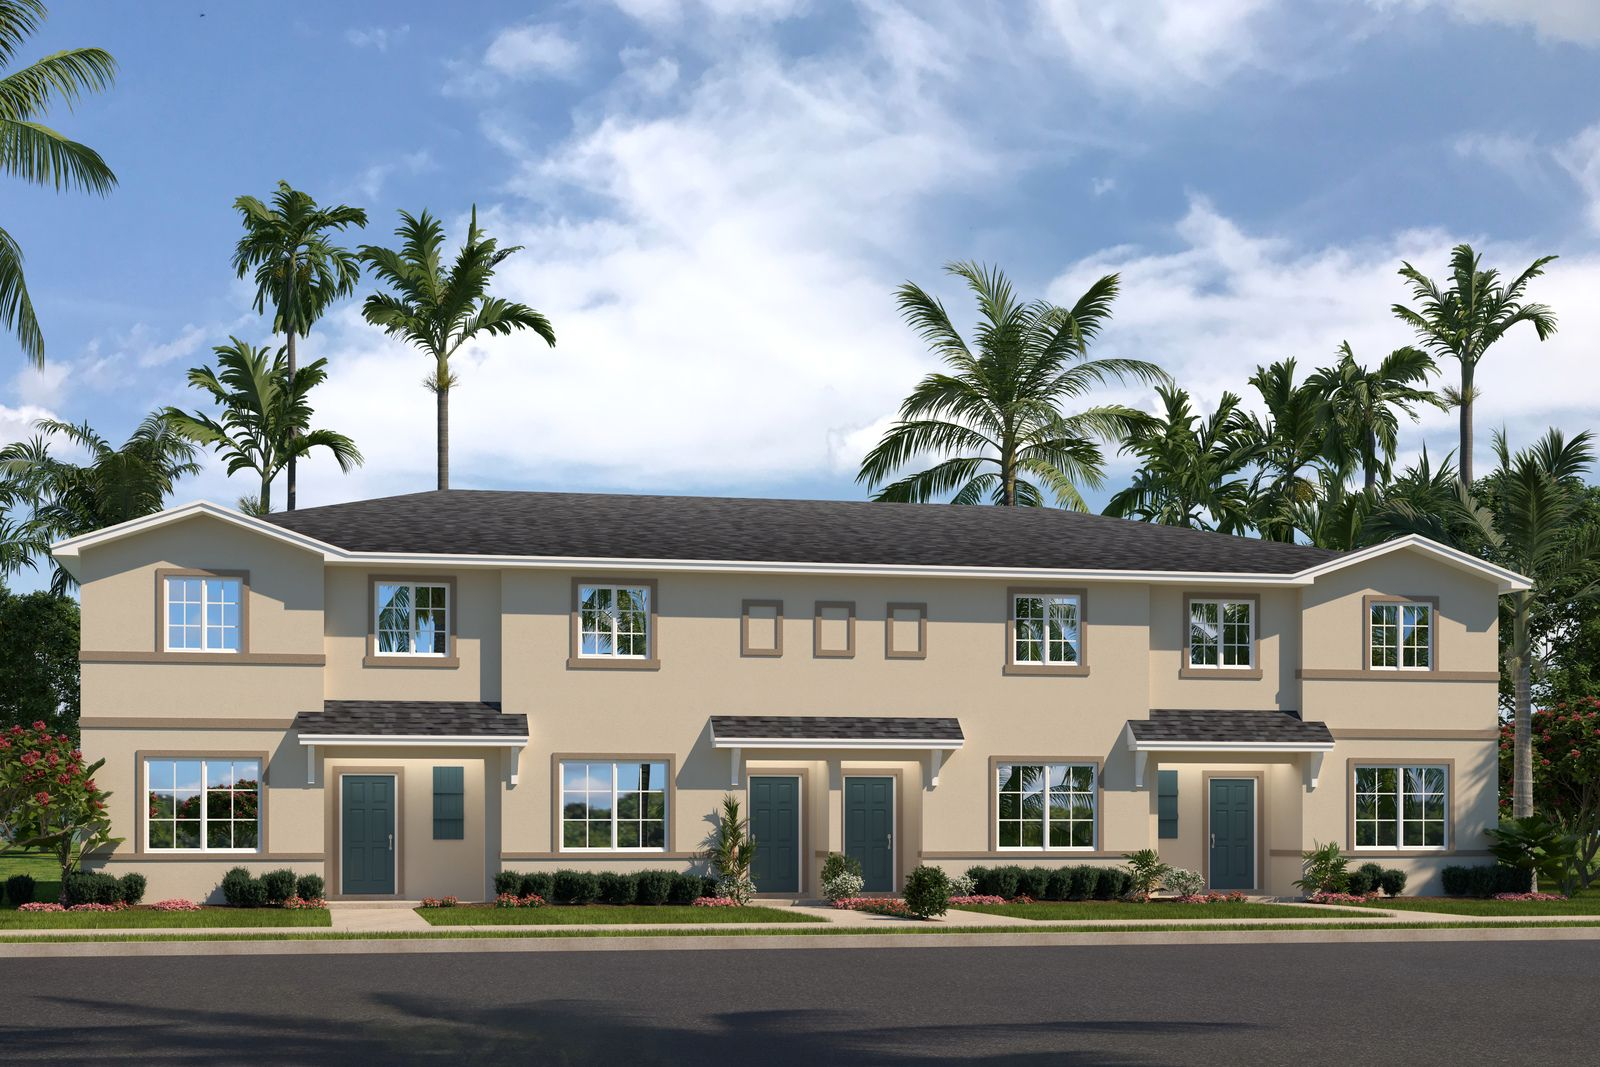 TOWNHOMES AT MAGNOLIA SQUARE IN FORT PIERCE:Spacious, affordable townhomes just minutes from downtown. Close to shopping & dining, I-95 & US 1. As low as $176,990.Schedule your appointment!